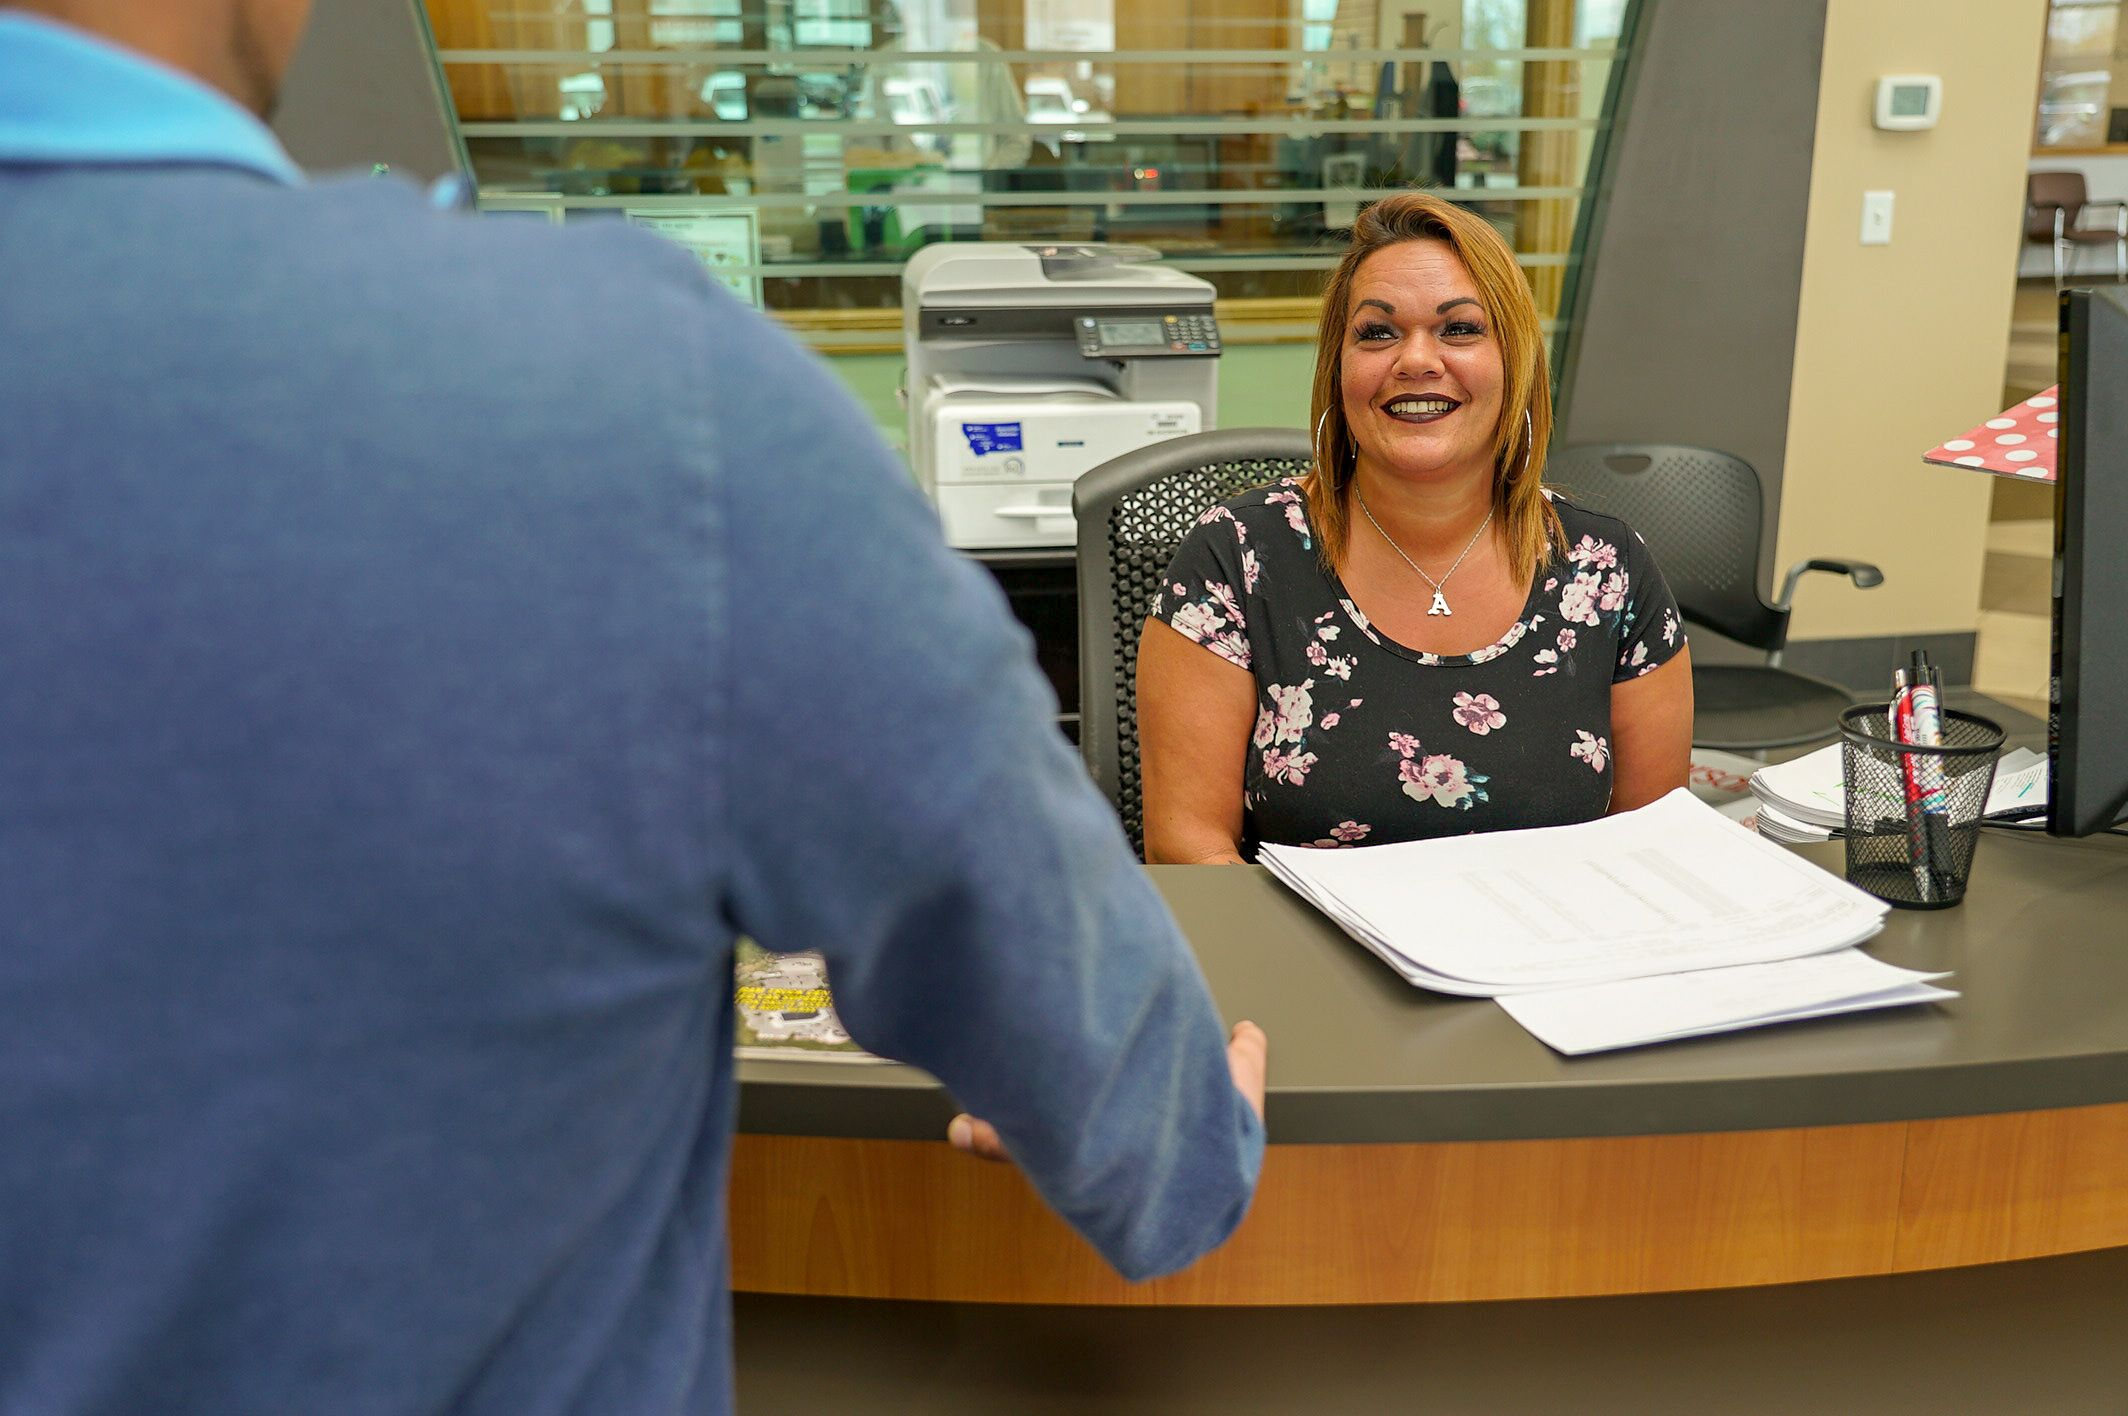 A photo of our front desk receptionist.